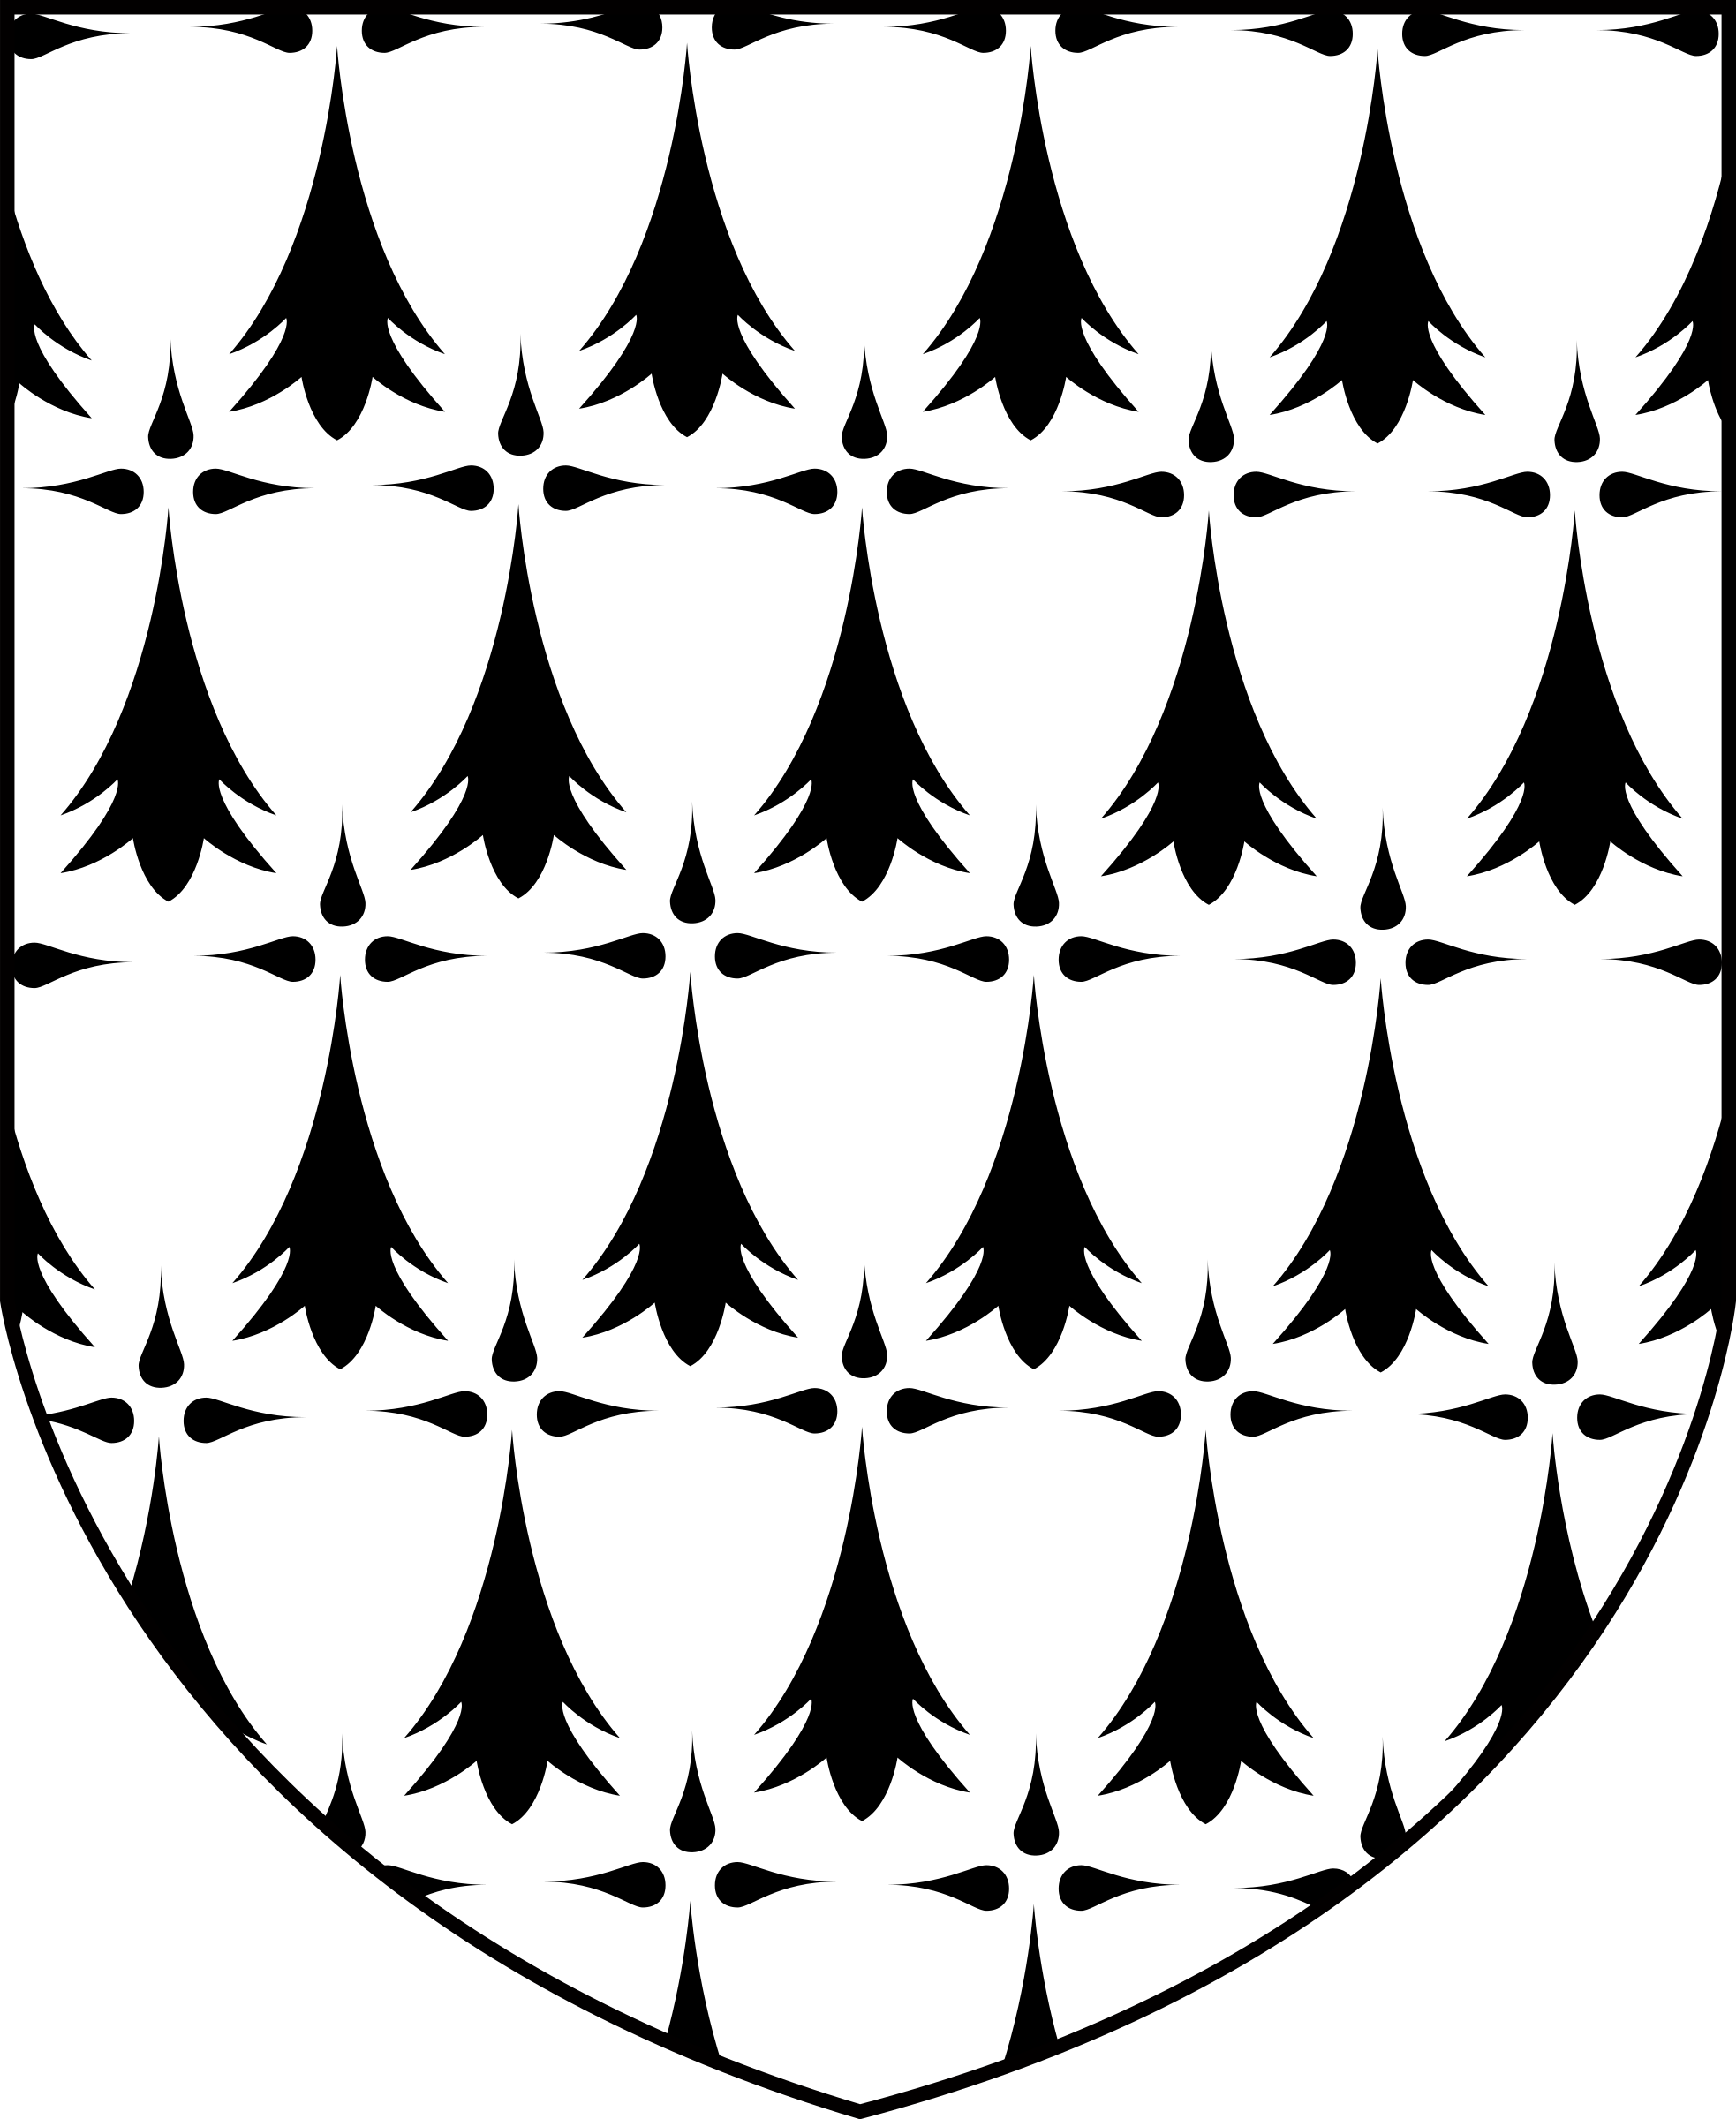 Bretagne - Coat of arms by Anonymous